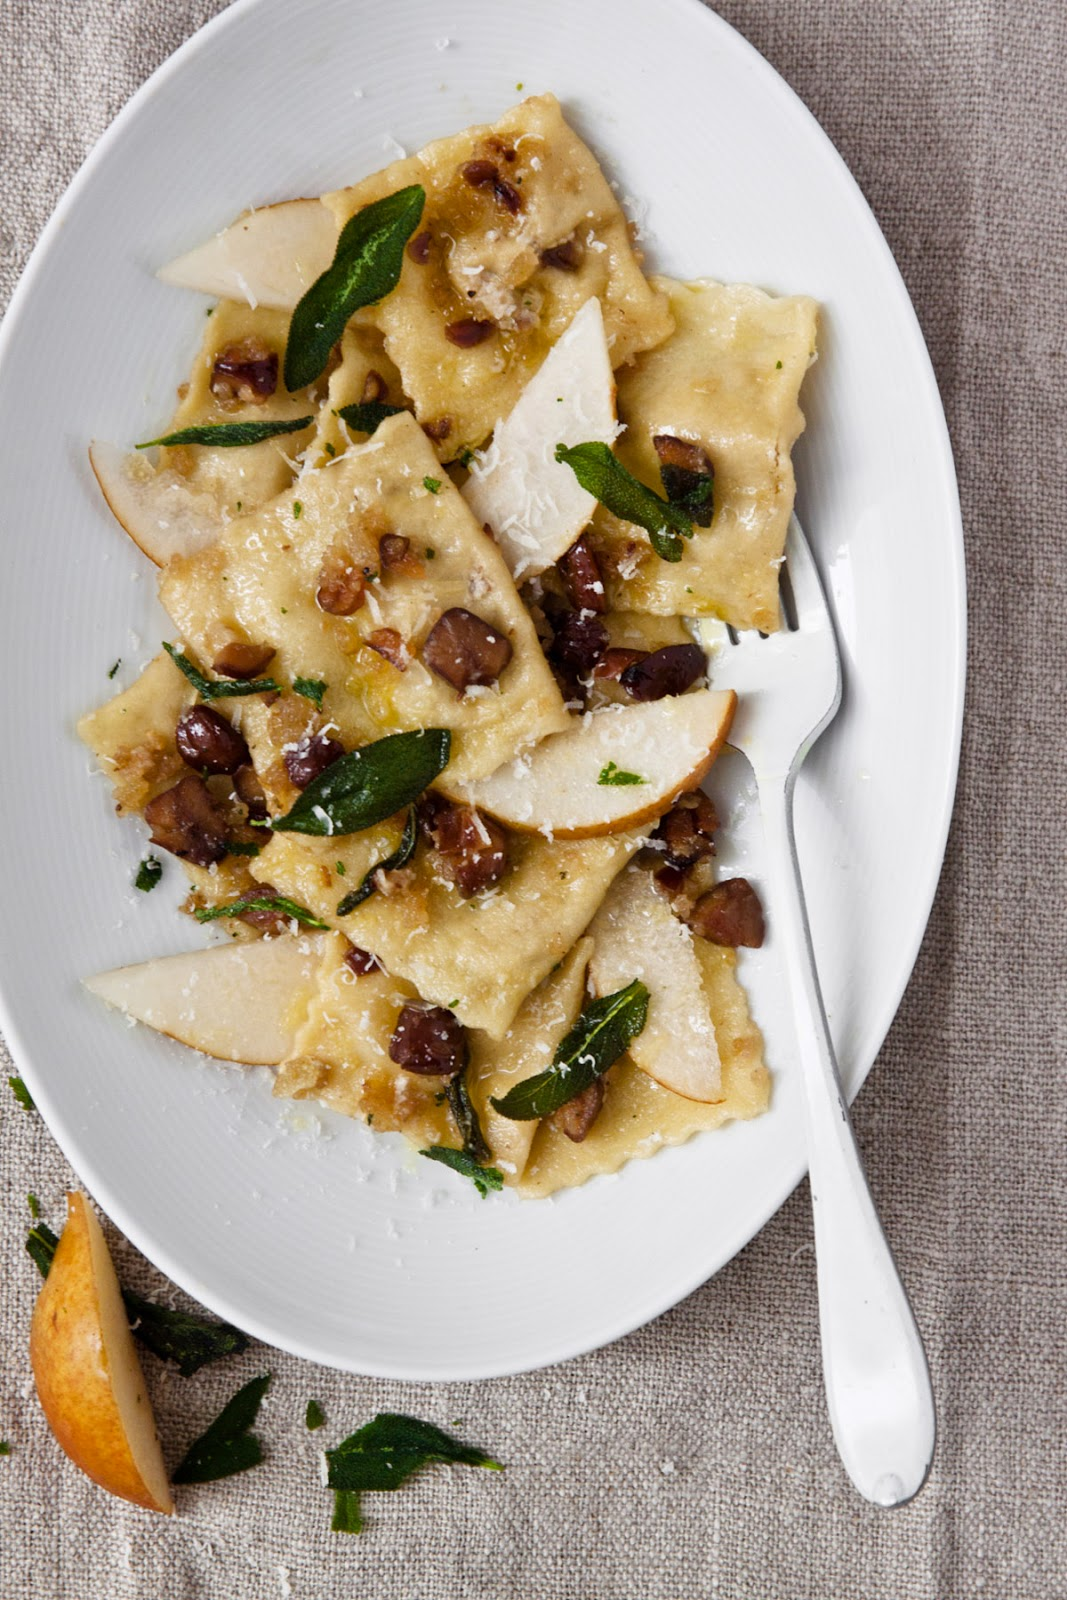 Pear and Chestnut Ravioli